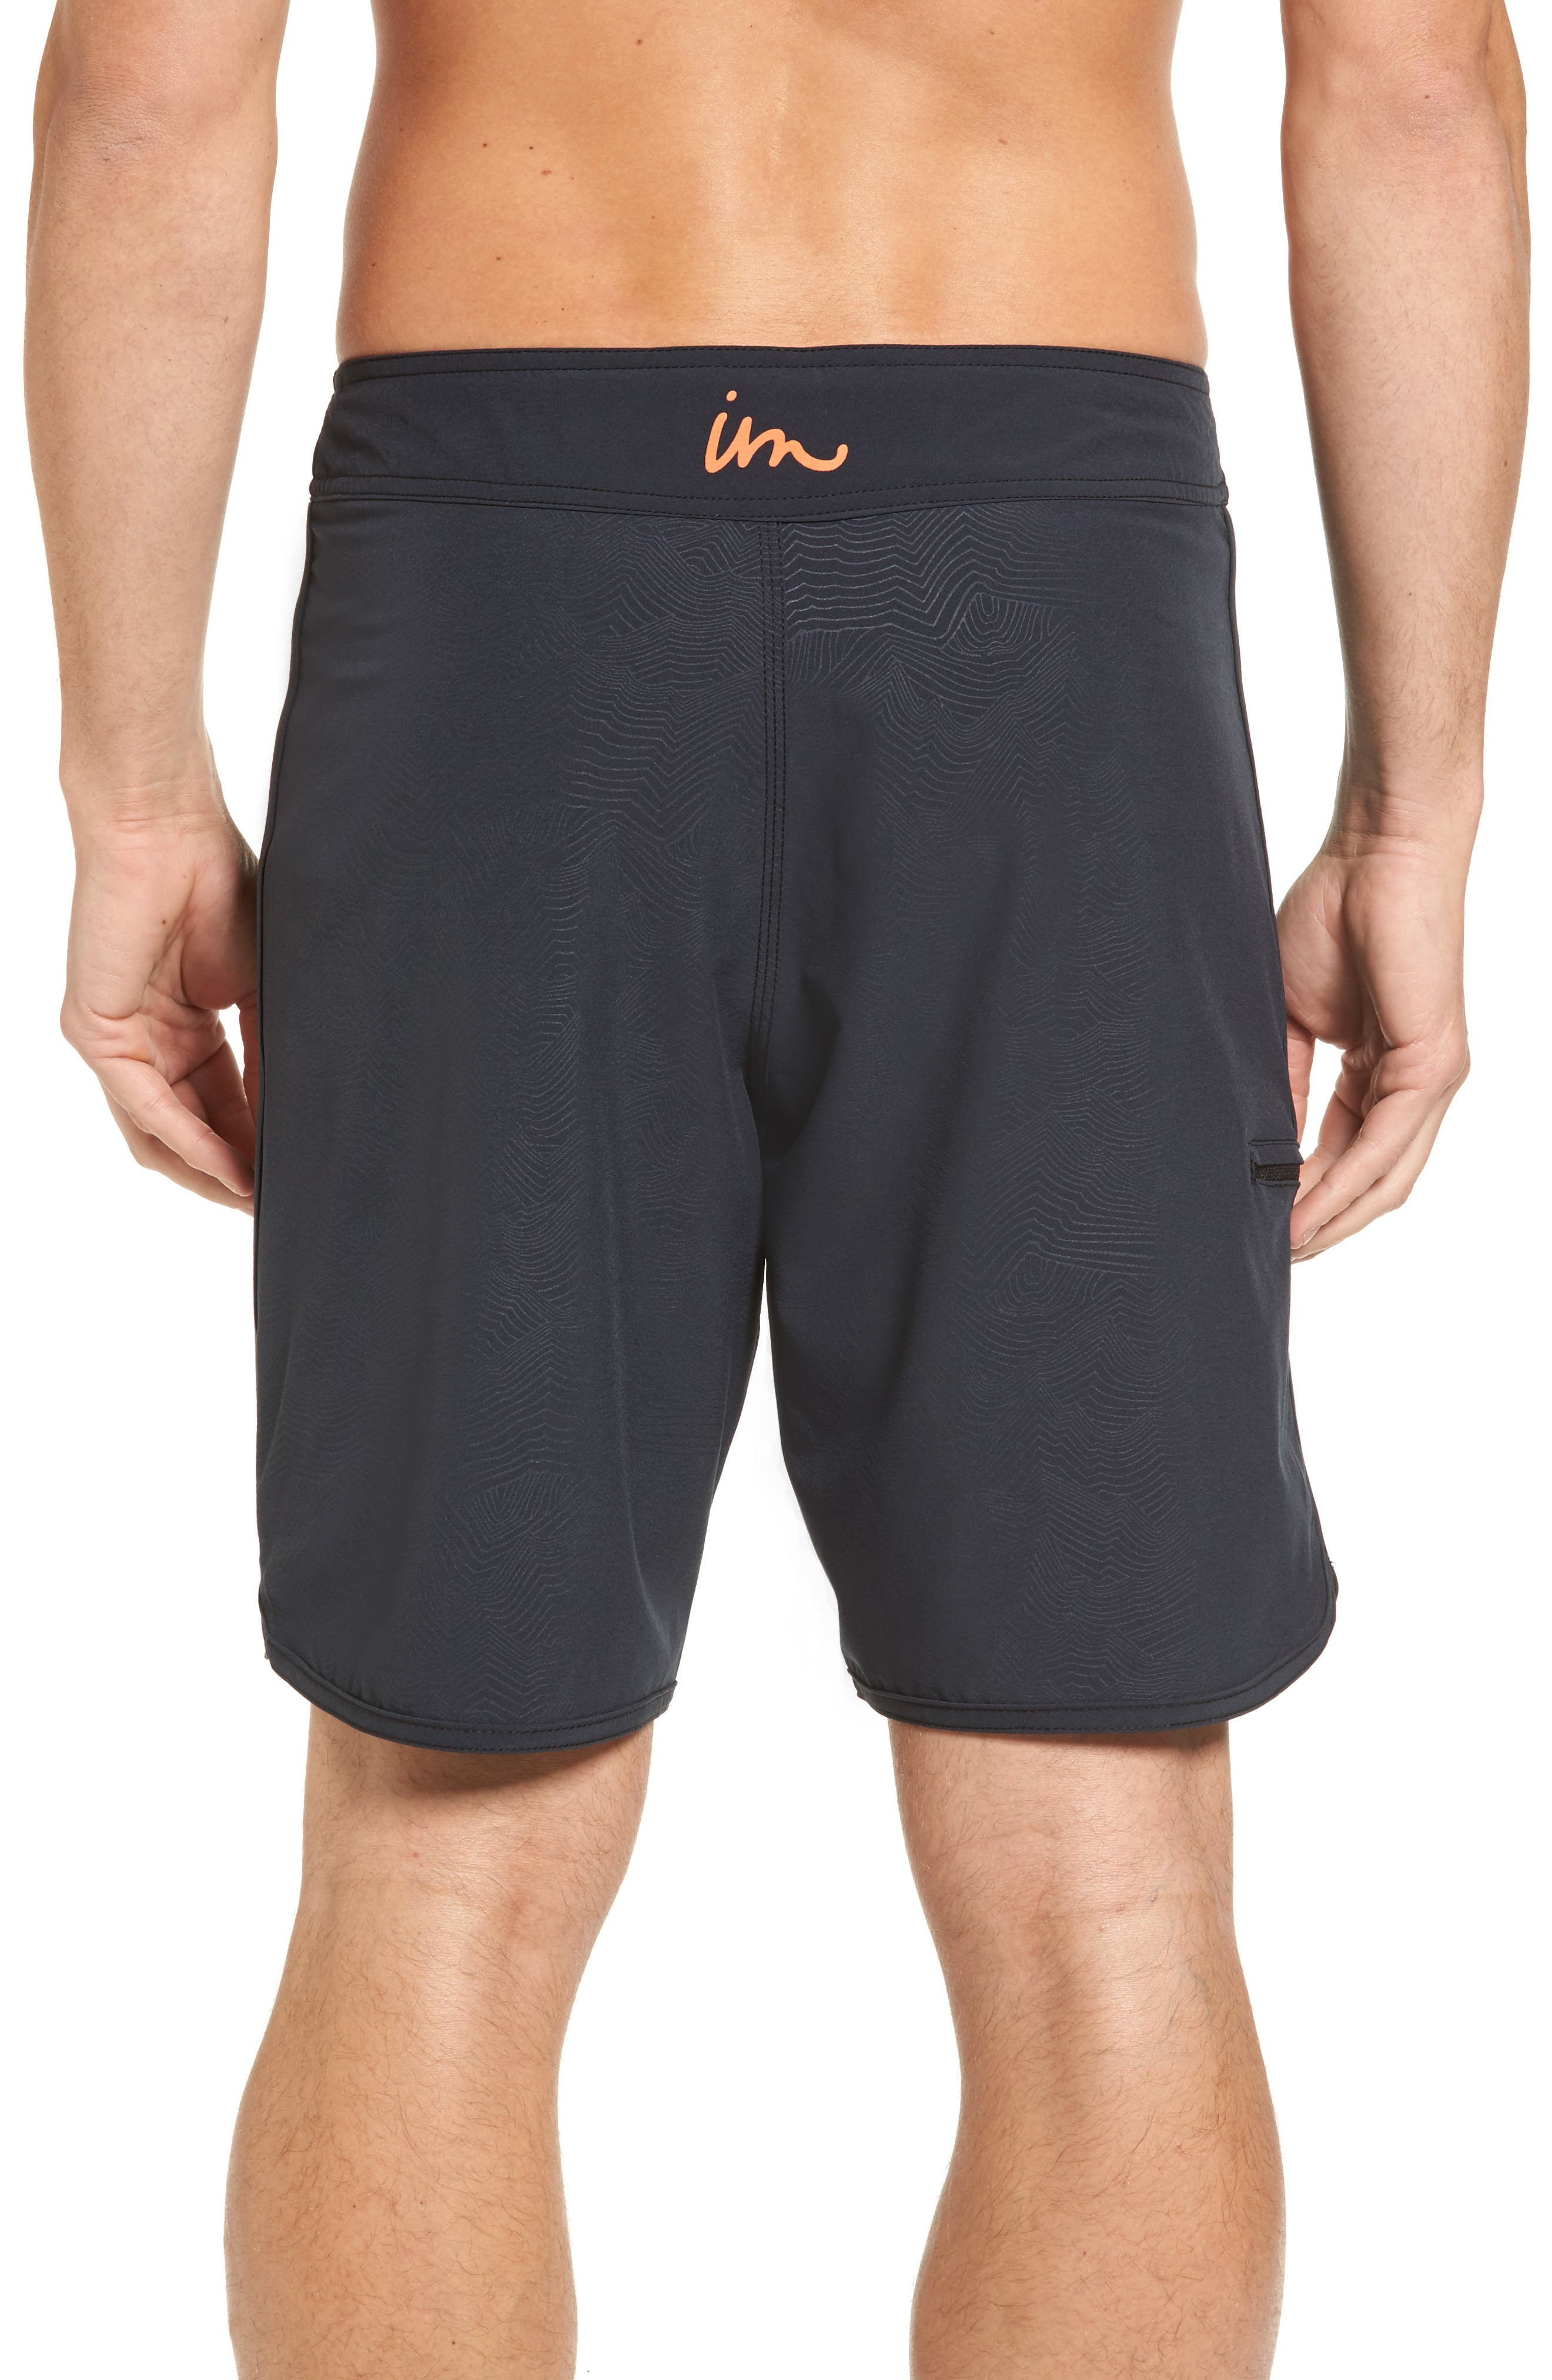 Elevation Board Shorts,                             Alternate thumbnail 2, color,                             001